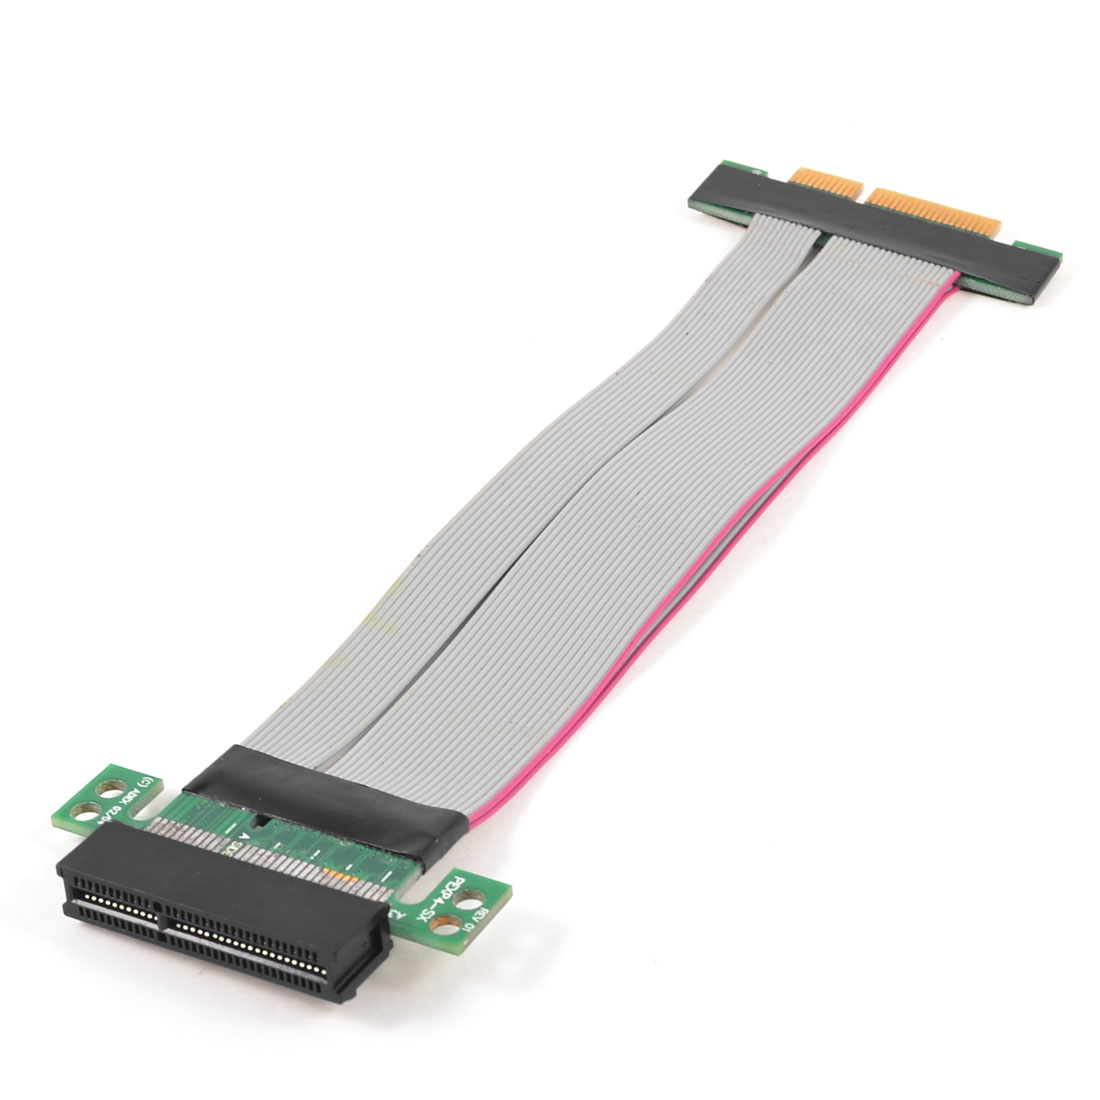 PCI-E 4X Slot Riser Card Extender Extension Ribbon Flex Cable Adapter